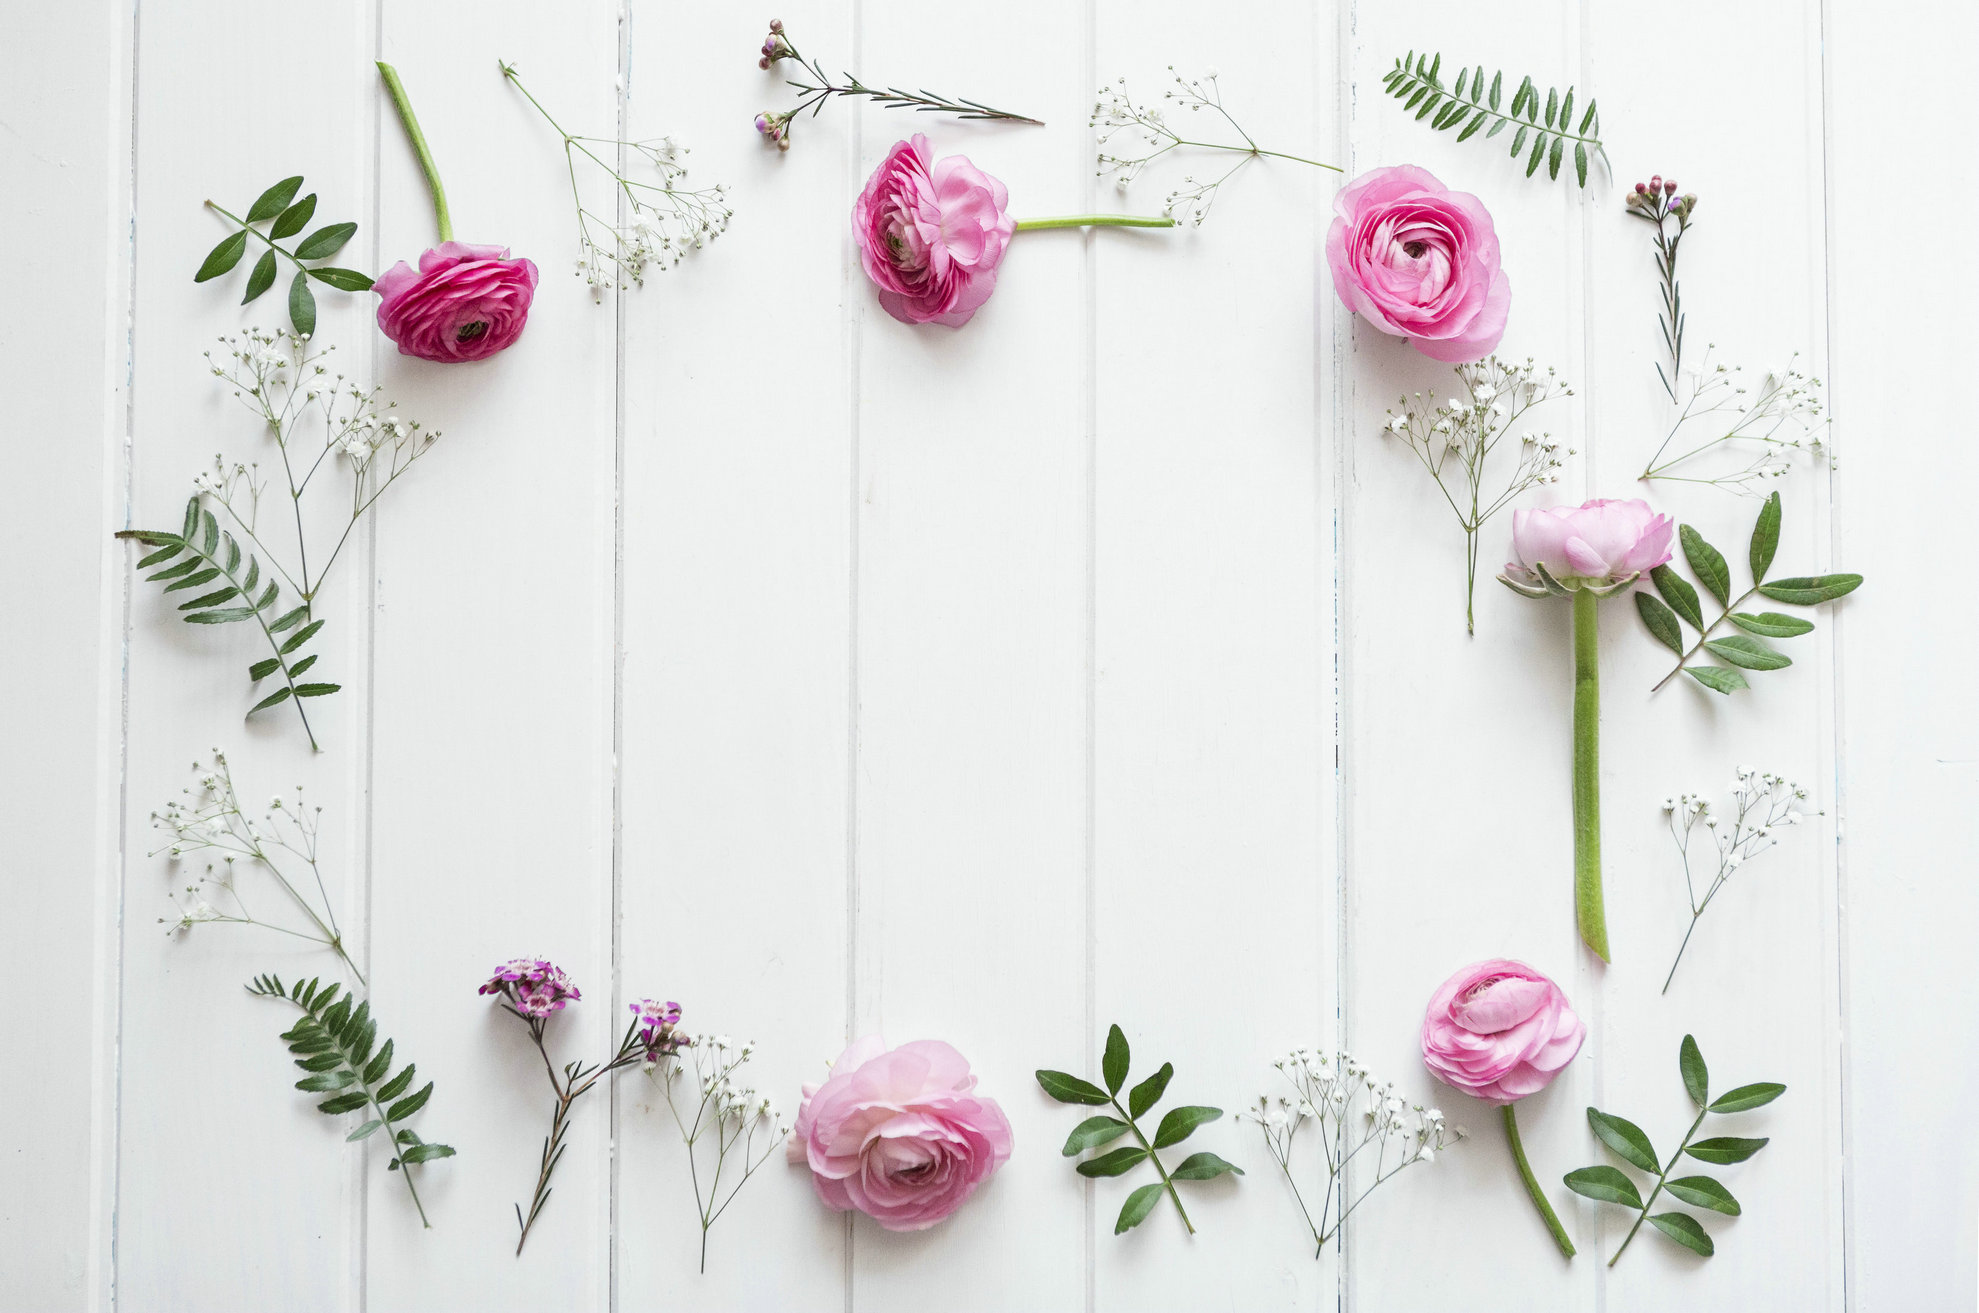 Decorative Pink Flowers White Real Wood Photography Backgrounds